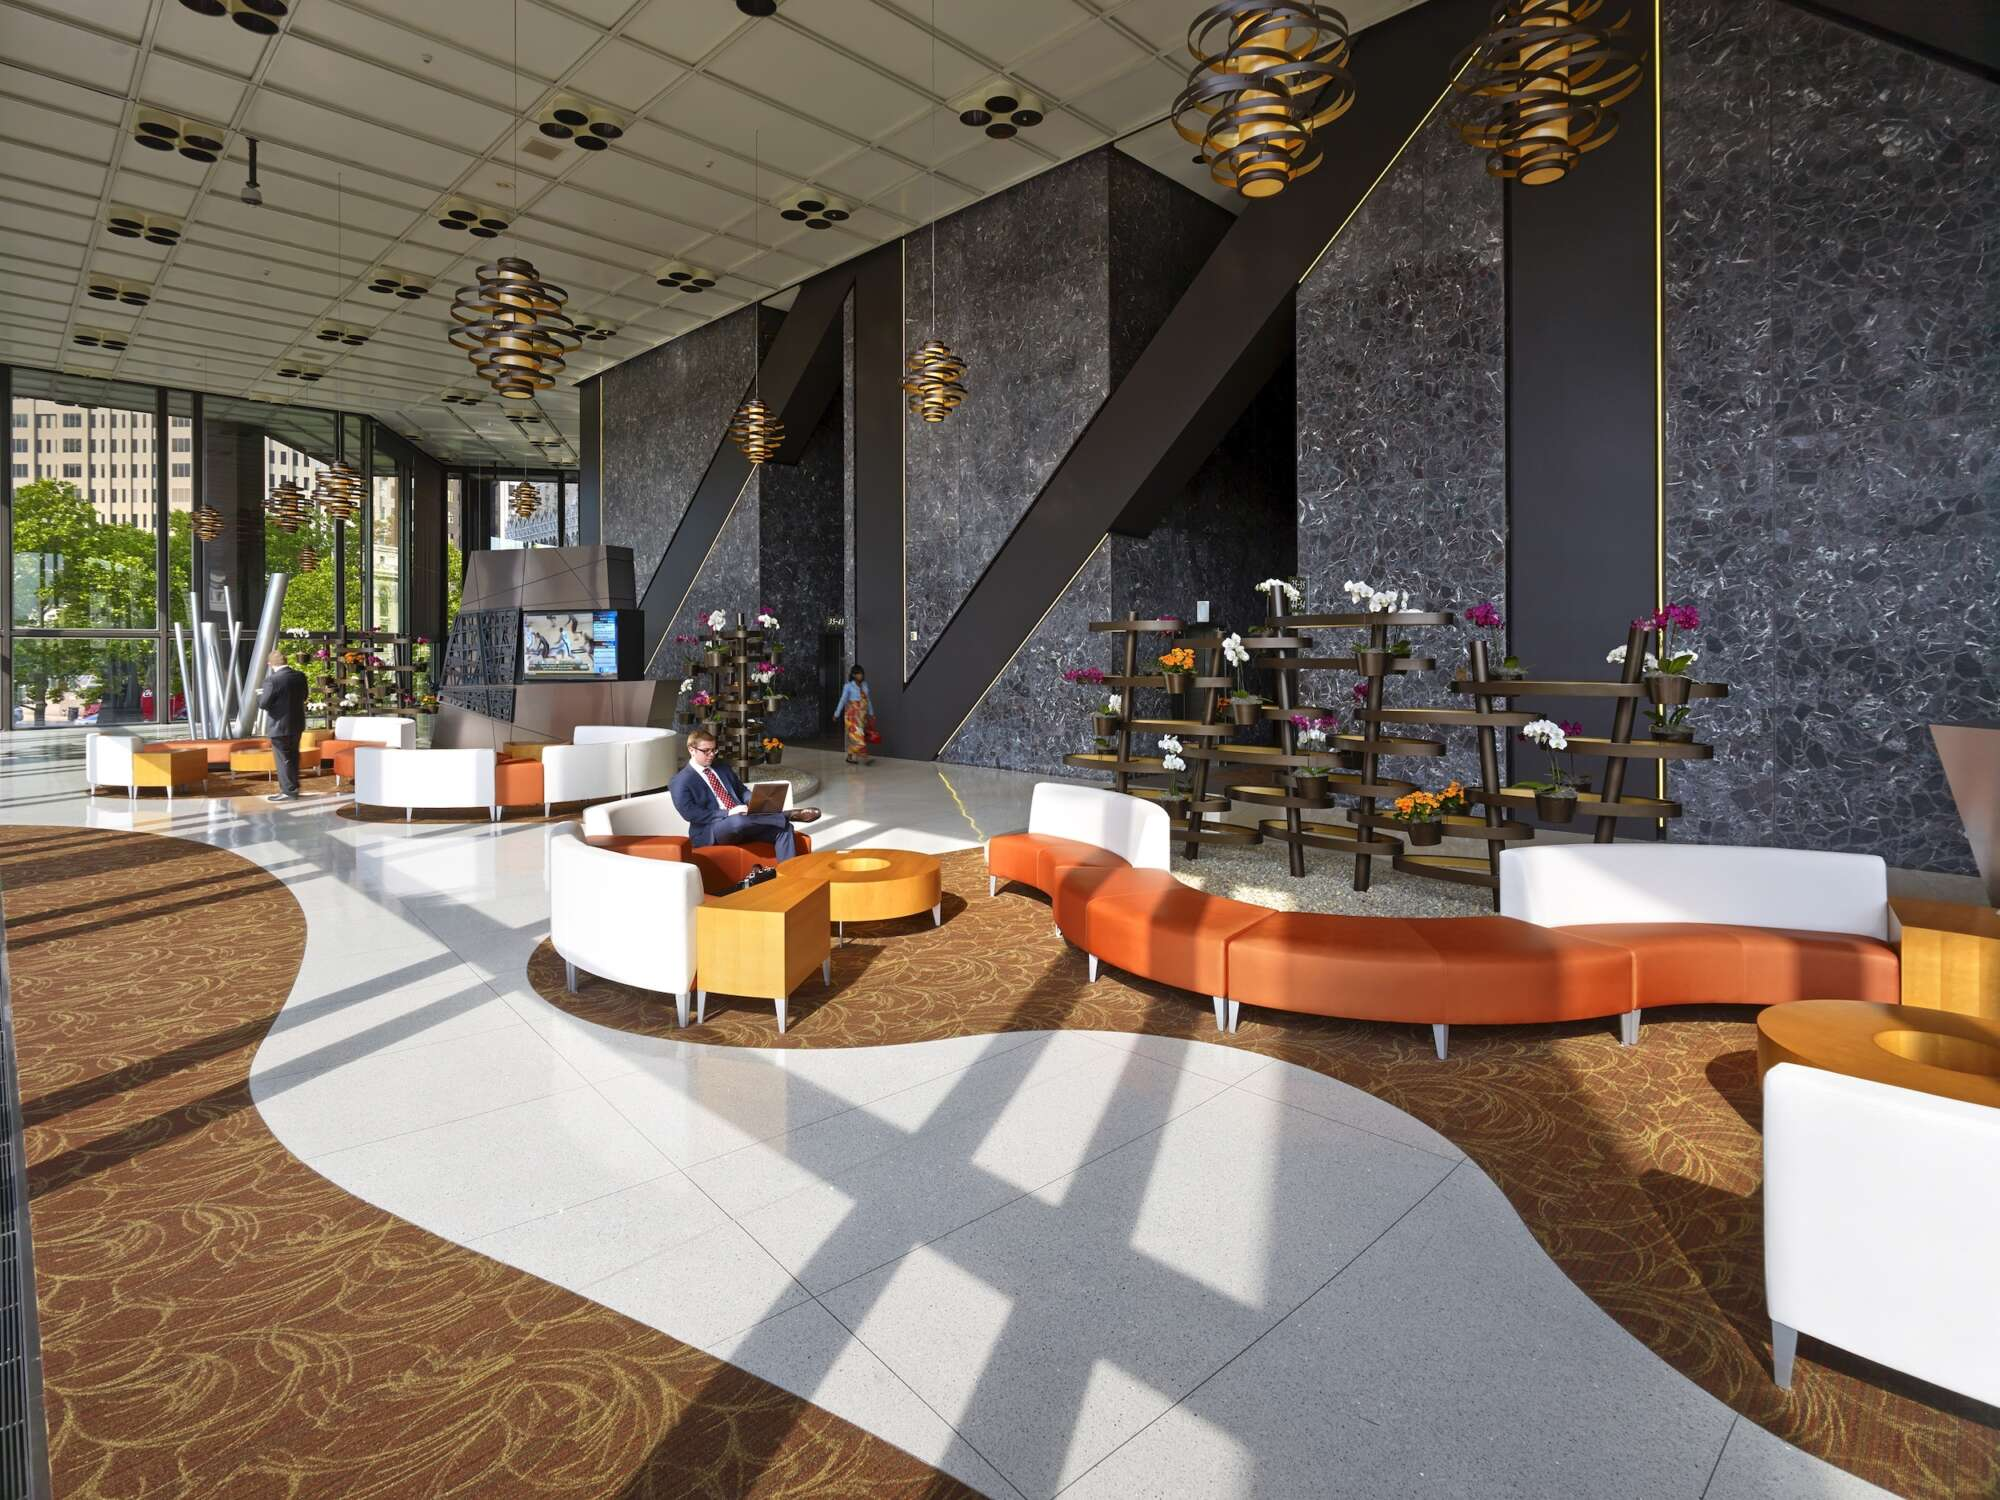 Lobby of U.S. Steel Tower with large windows, tall ceilings and curved colorful seating